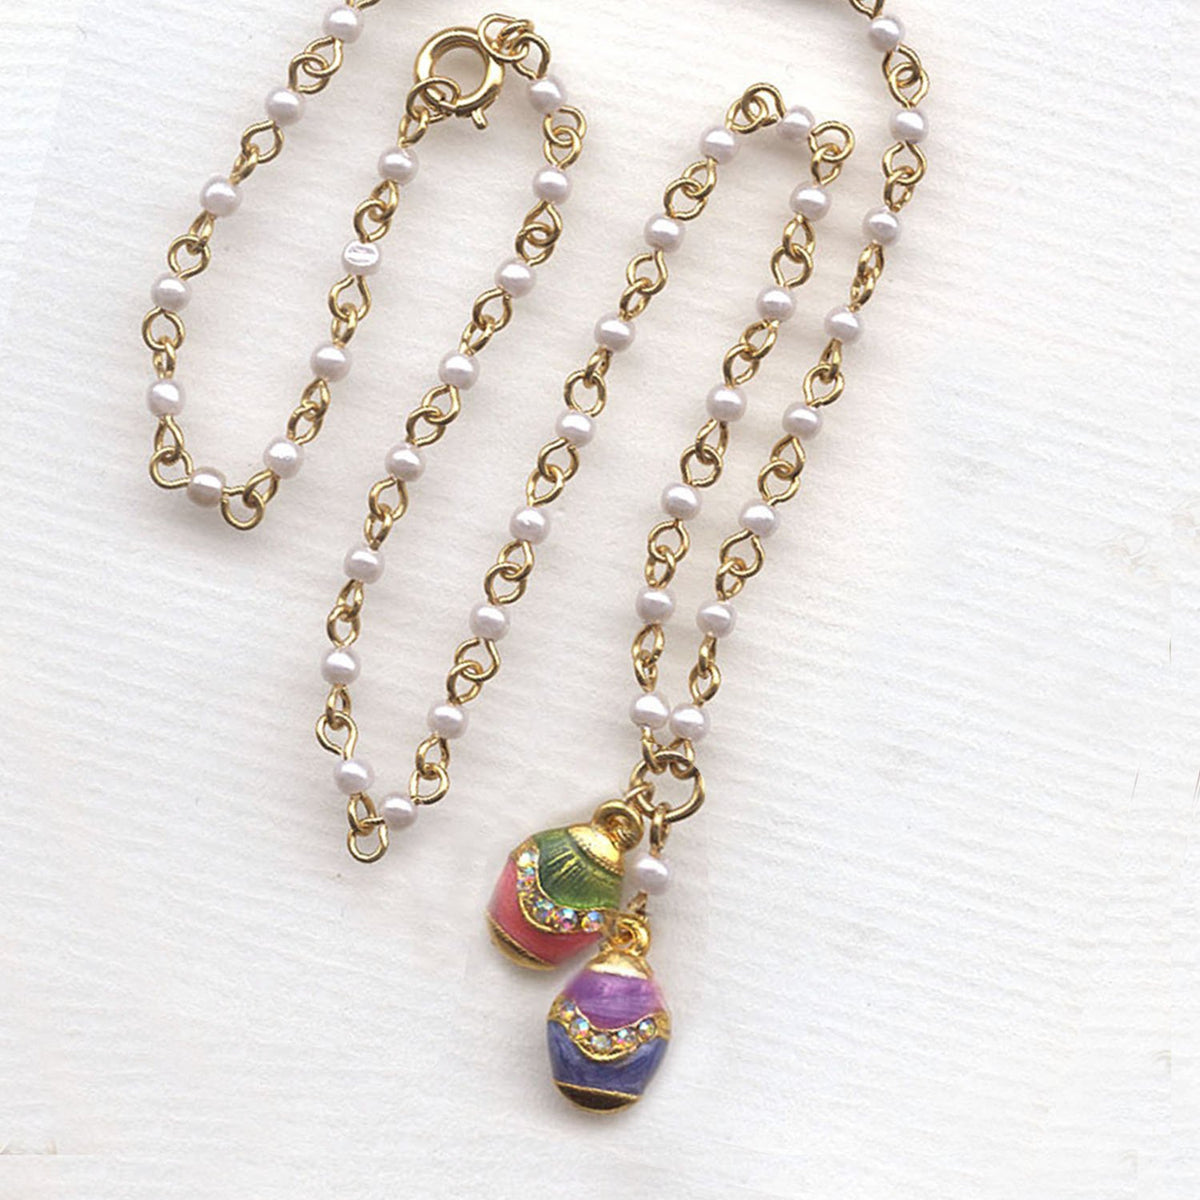 Easter Egg Necklace N201 - Sweet Romance Wholesale